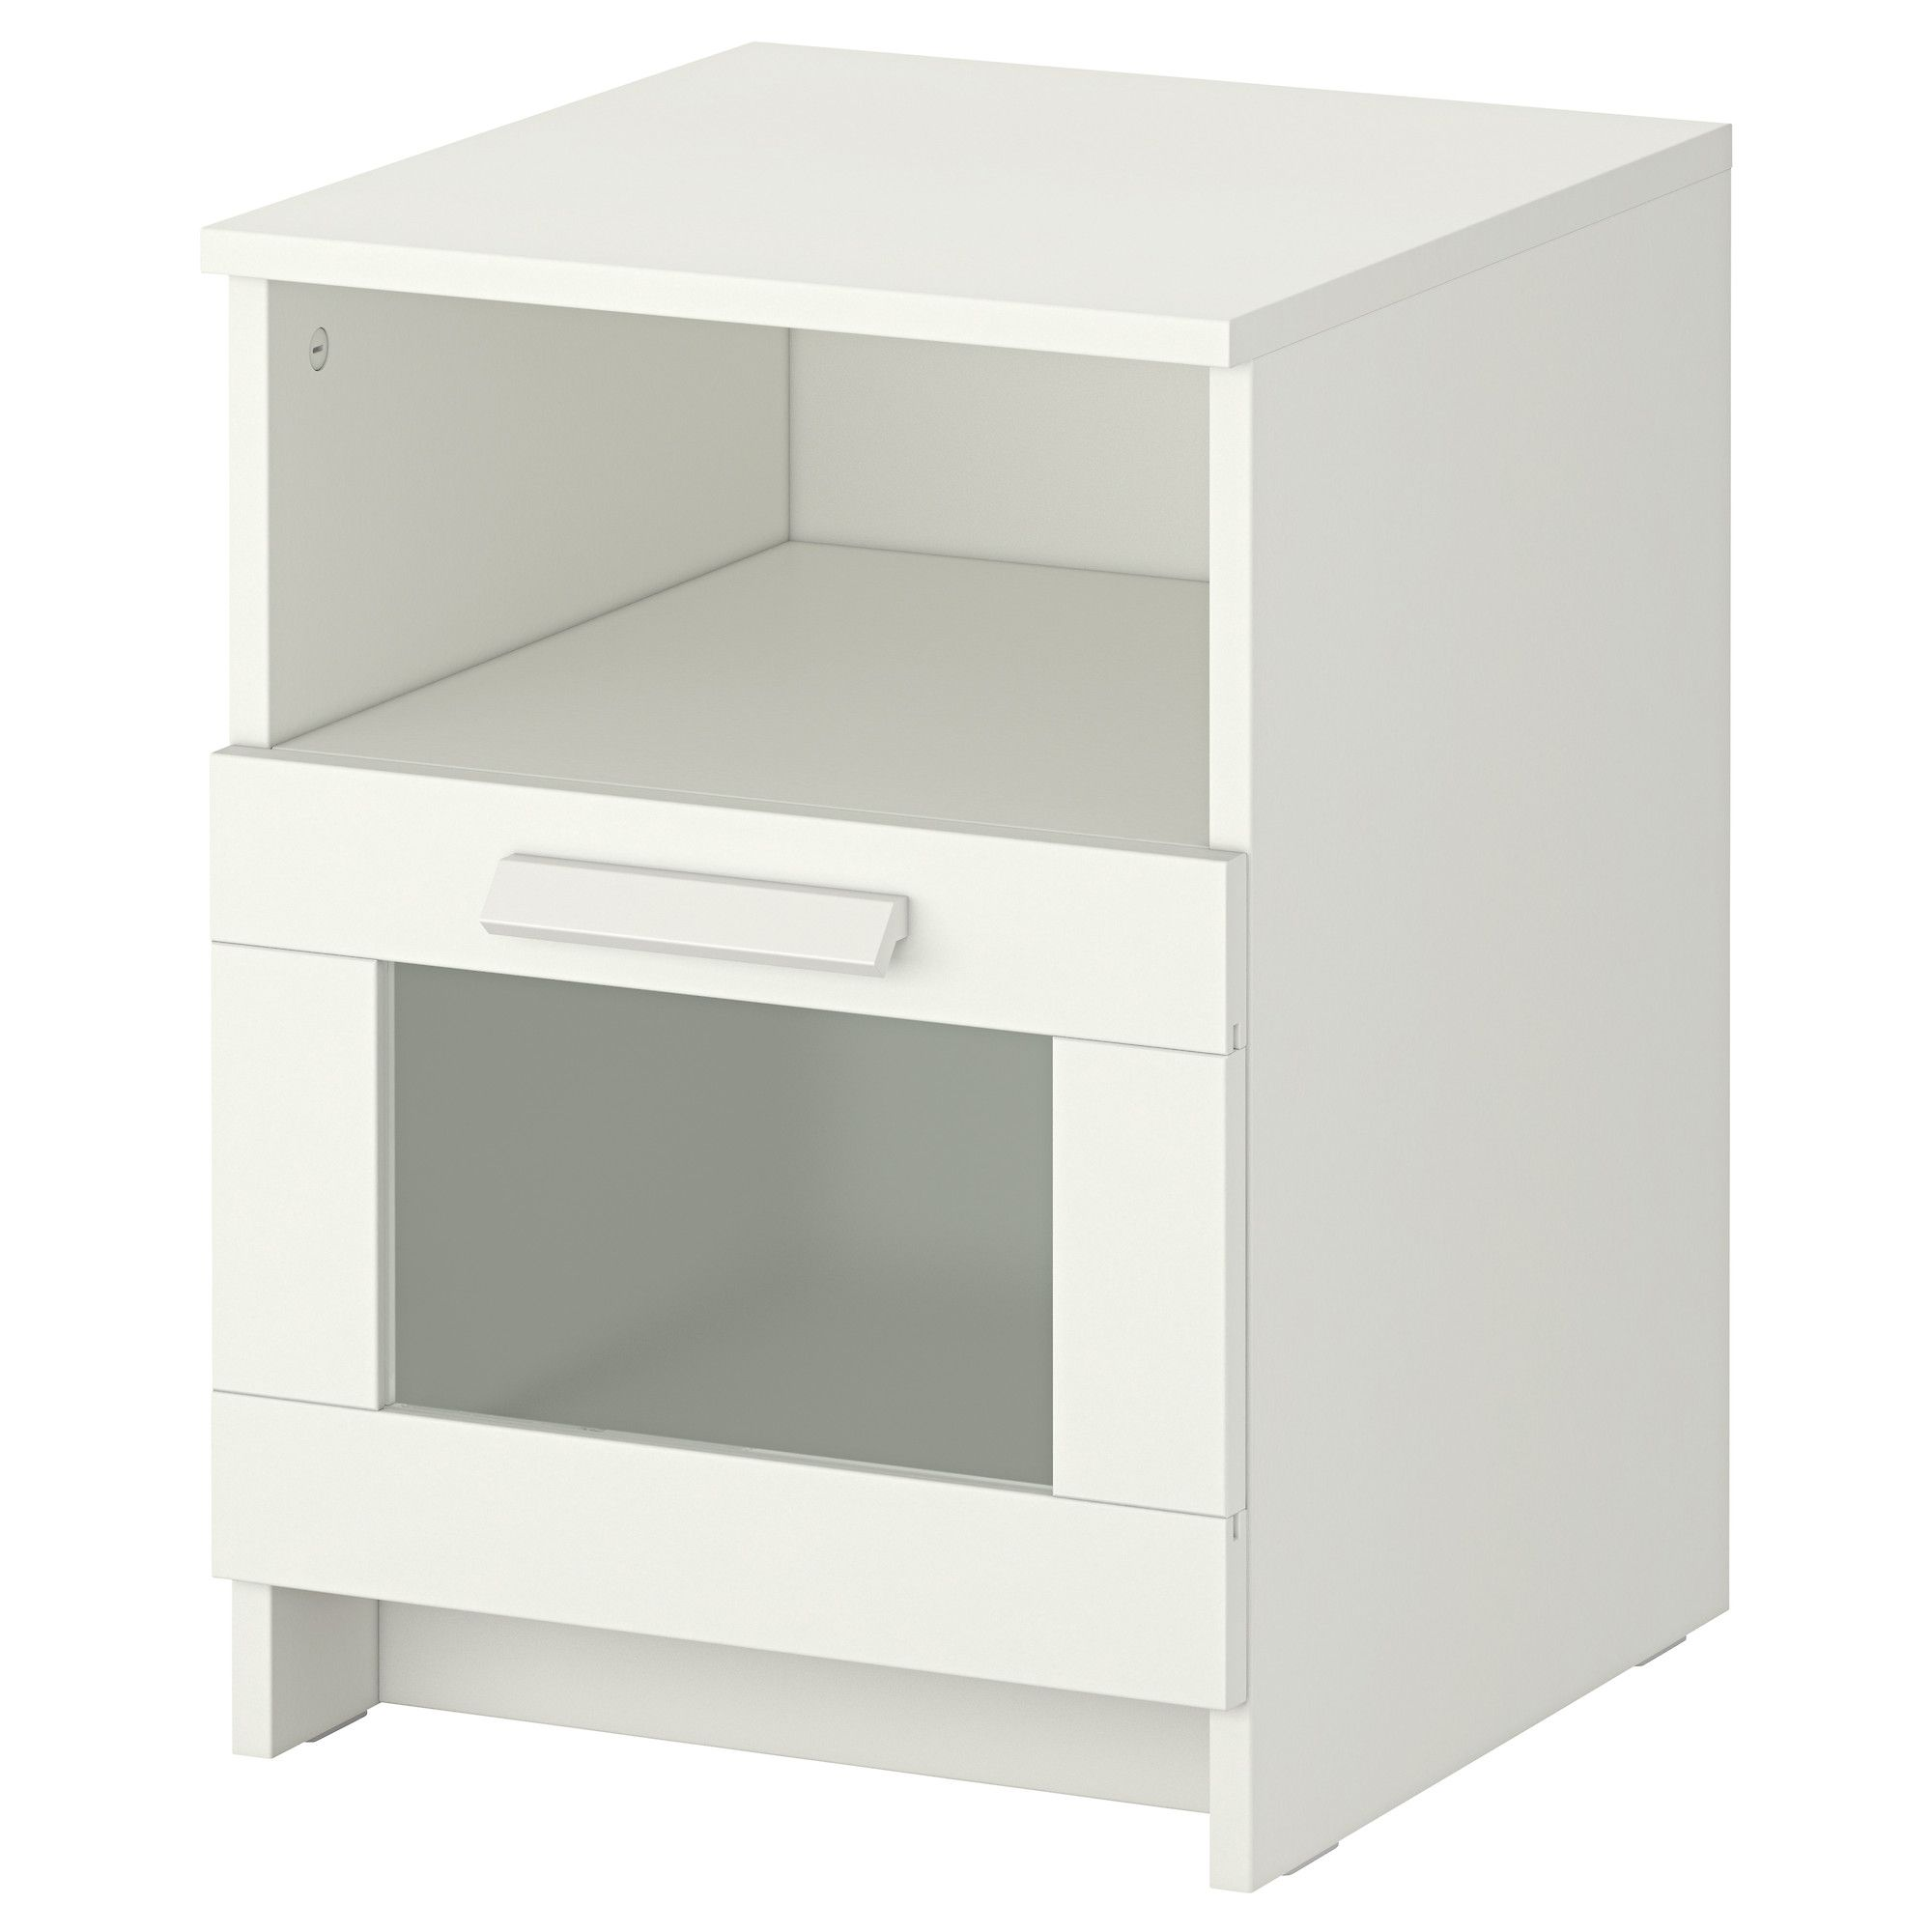 Brimnes Nightstand White 15 3 8x16 1 8 Bedside Table Ikea